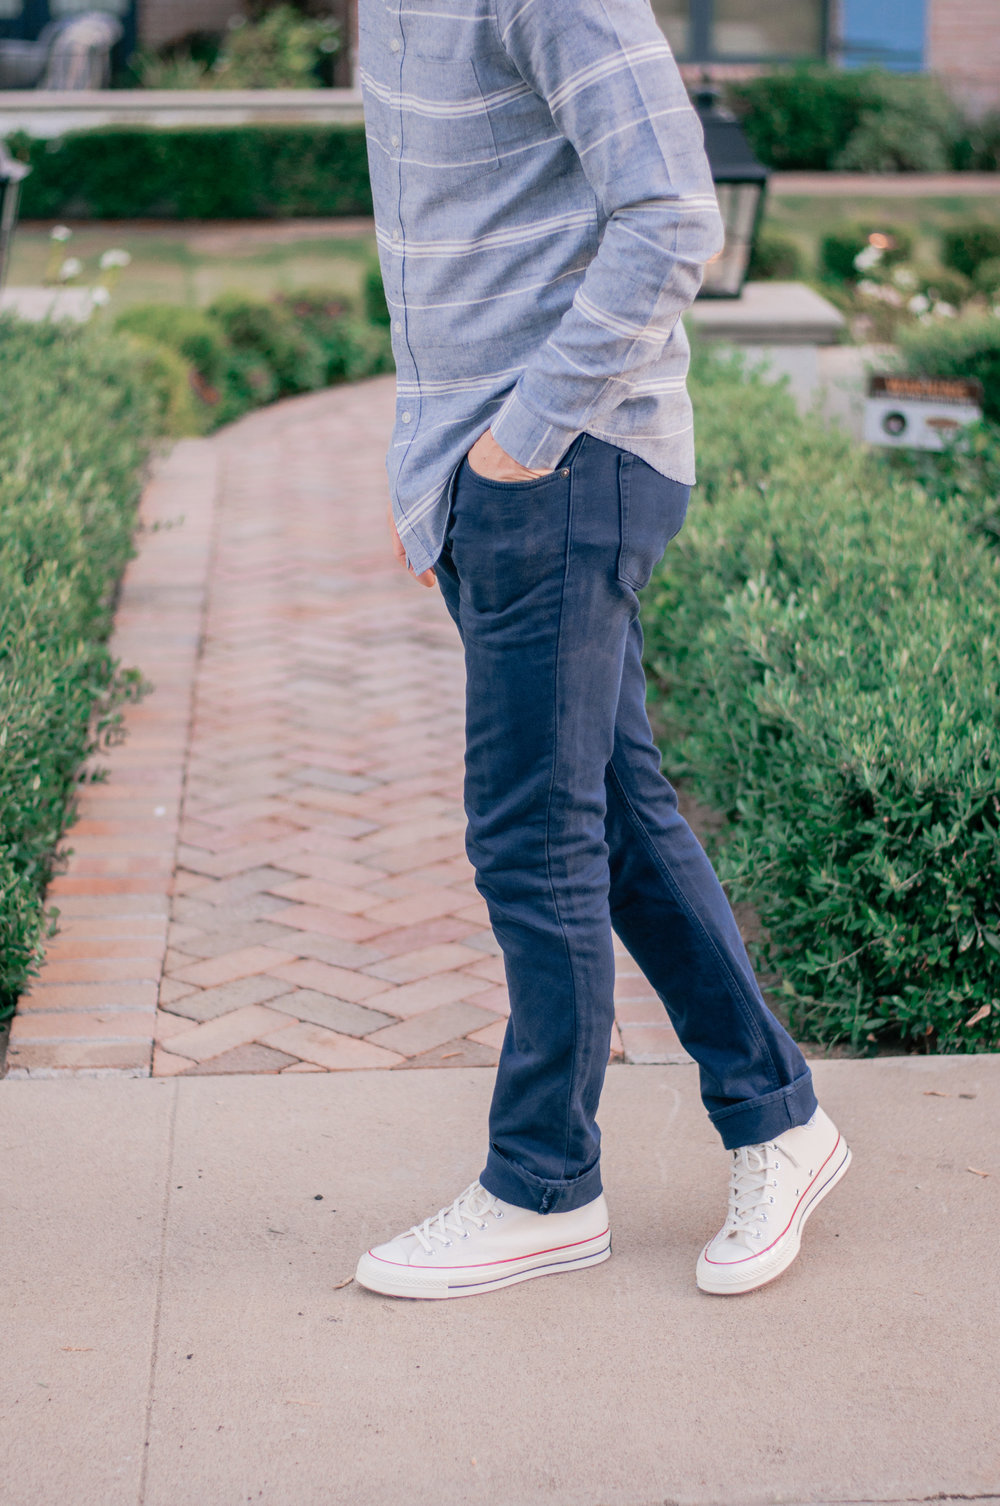 Men's Casual Vintage Sneakers Outfit